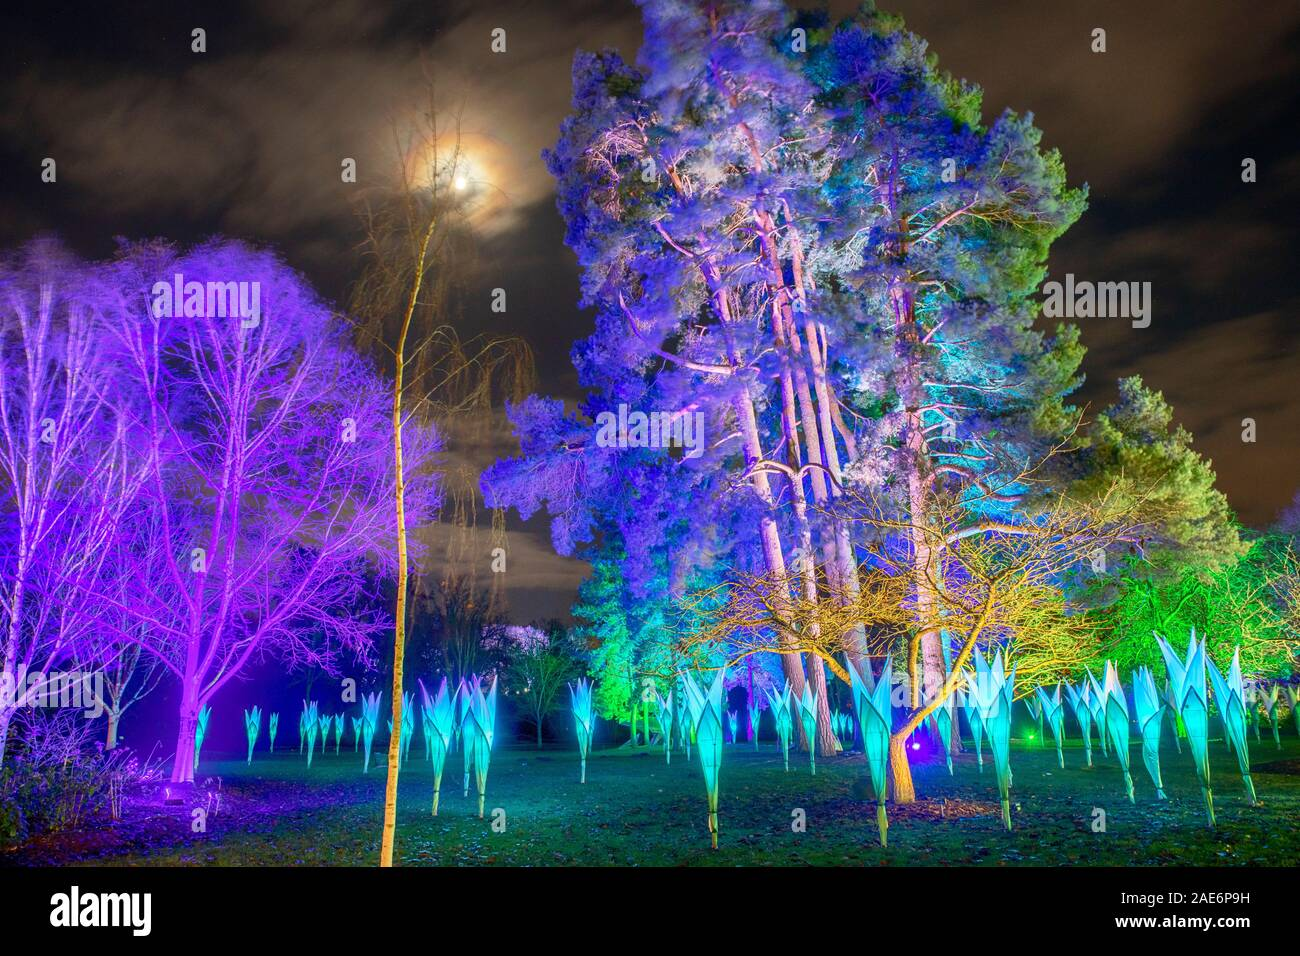 RHS Wisley, Surrey, UK. 6th December 2019. Enchanting trail with dazzling light installations themed around the four seasons all lit up at night during the festive season from 7 December 2019 - 5 January 2020. The ticketed event has sold out in advance. Credit: Malcolm Park/Alamy. Stock Photo